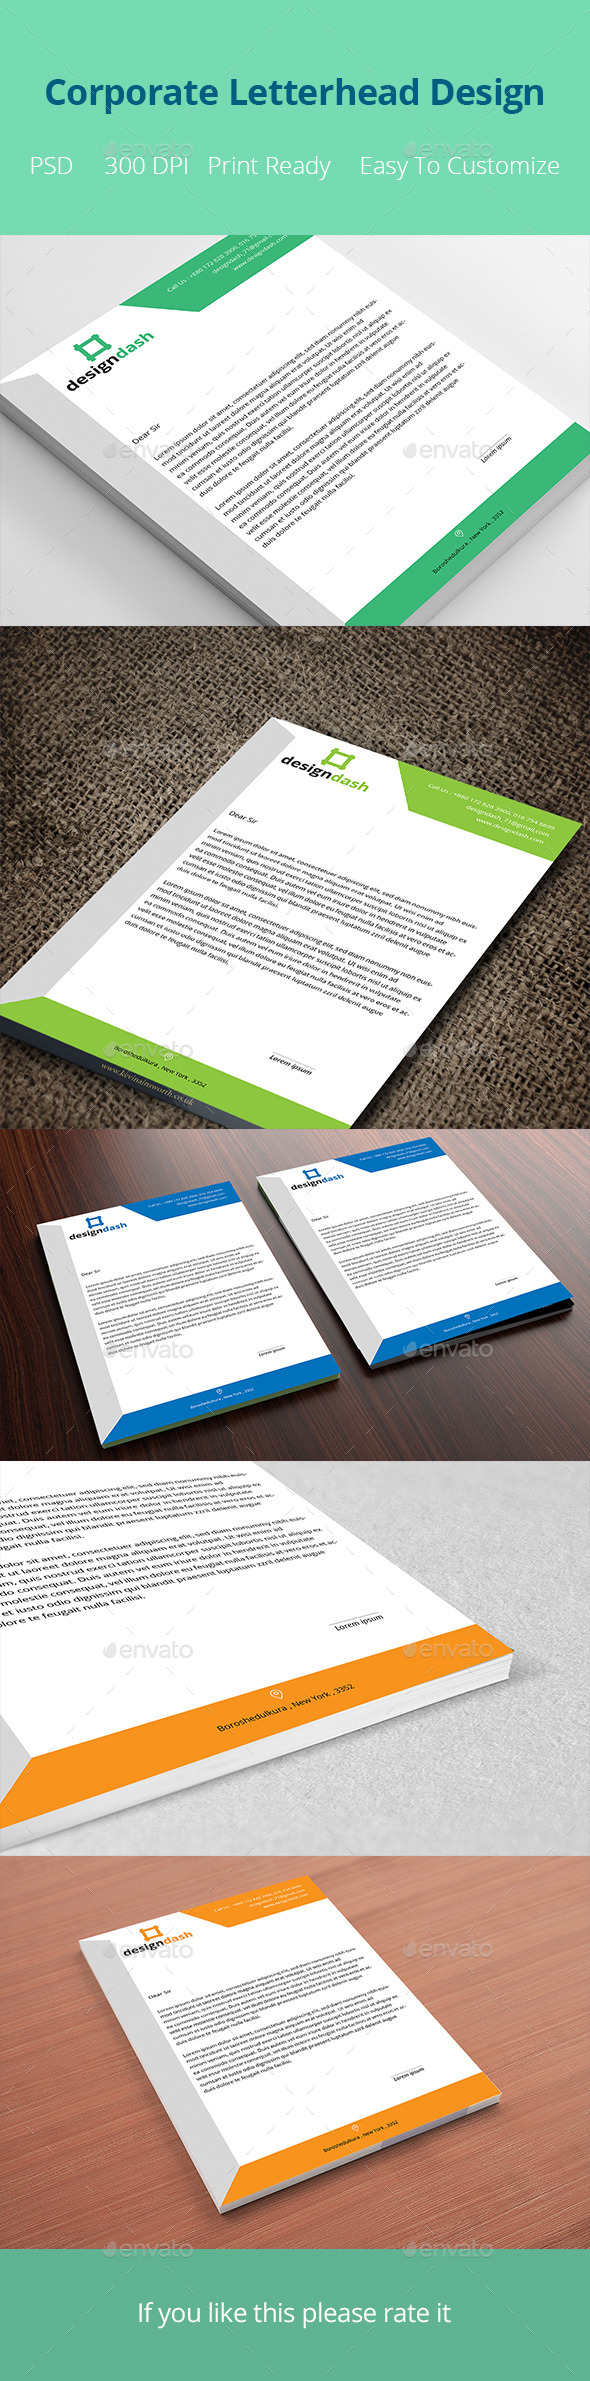 12 free letterhead templates in psd ms word and pdf format corporate letterhead design template spiritdancerdesigns Gallery